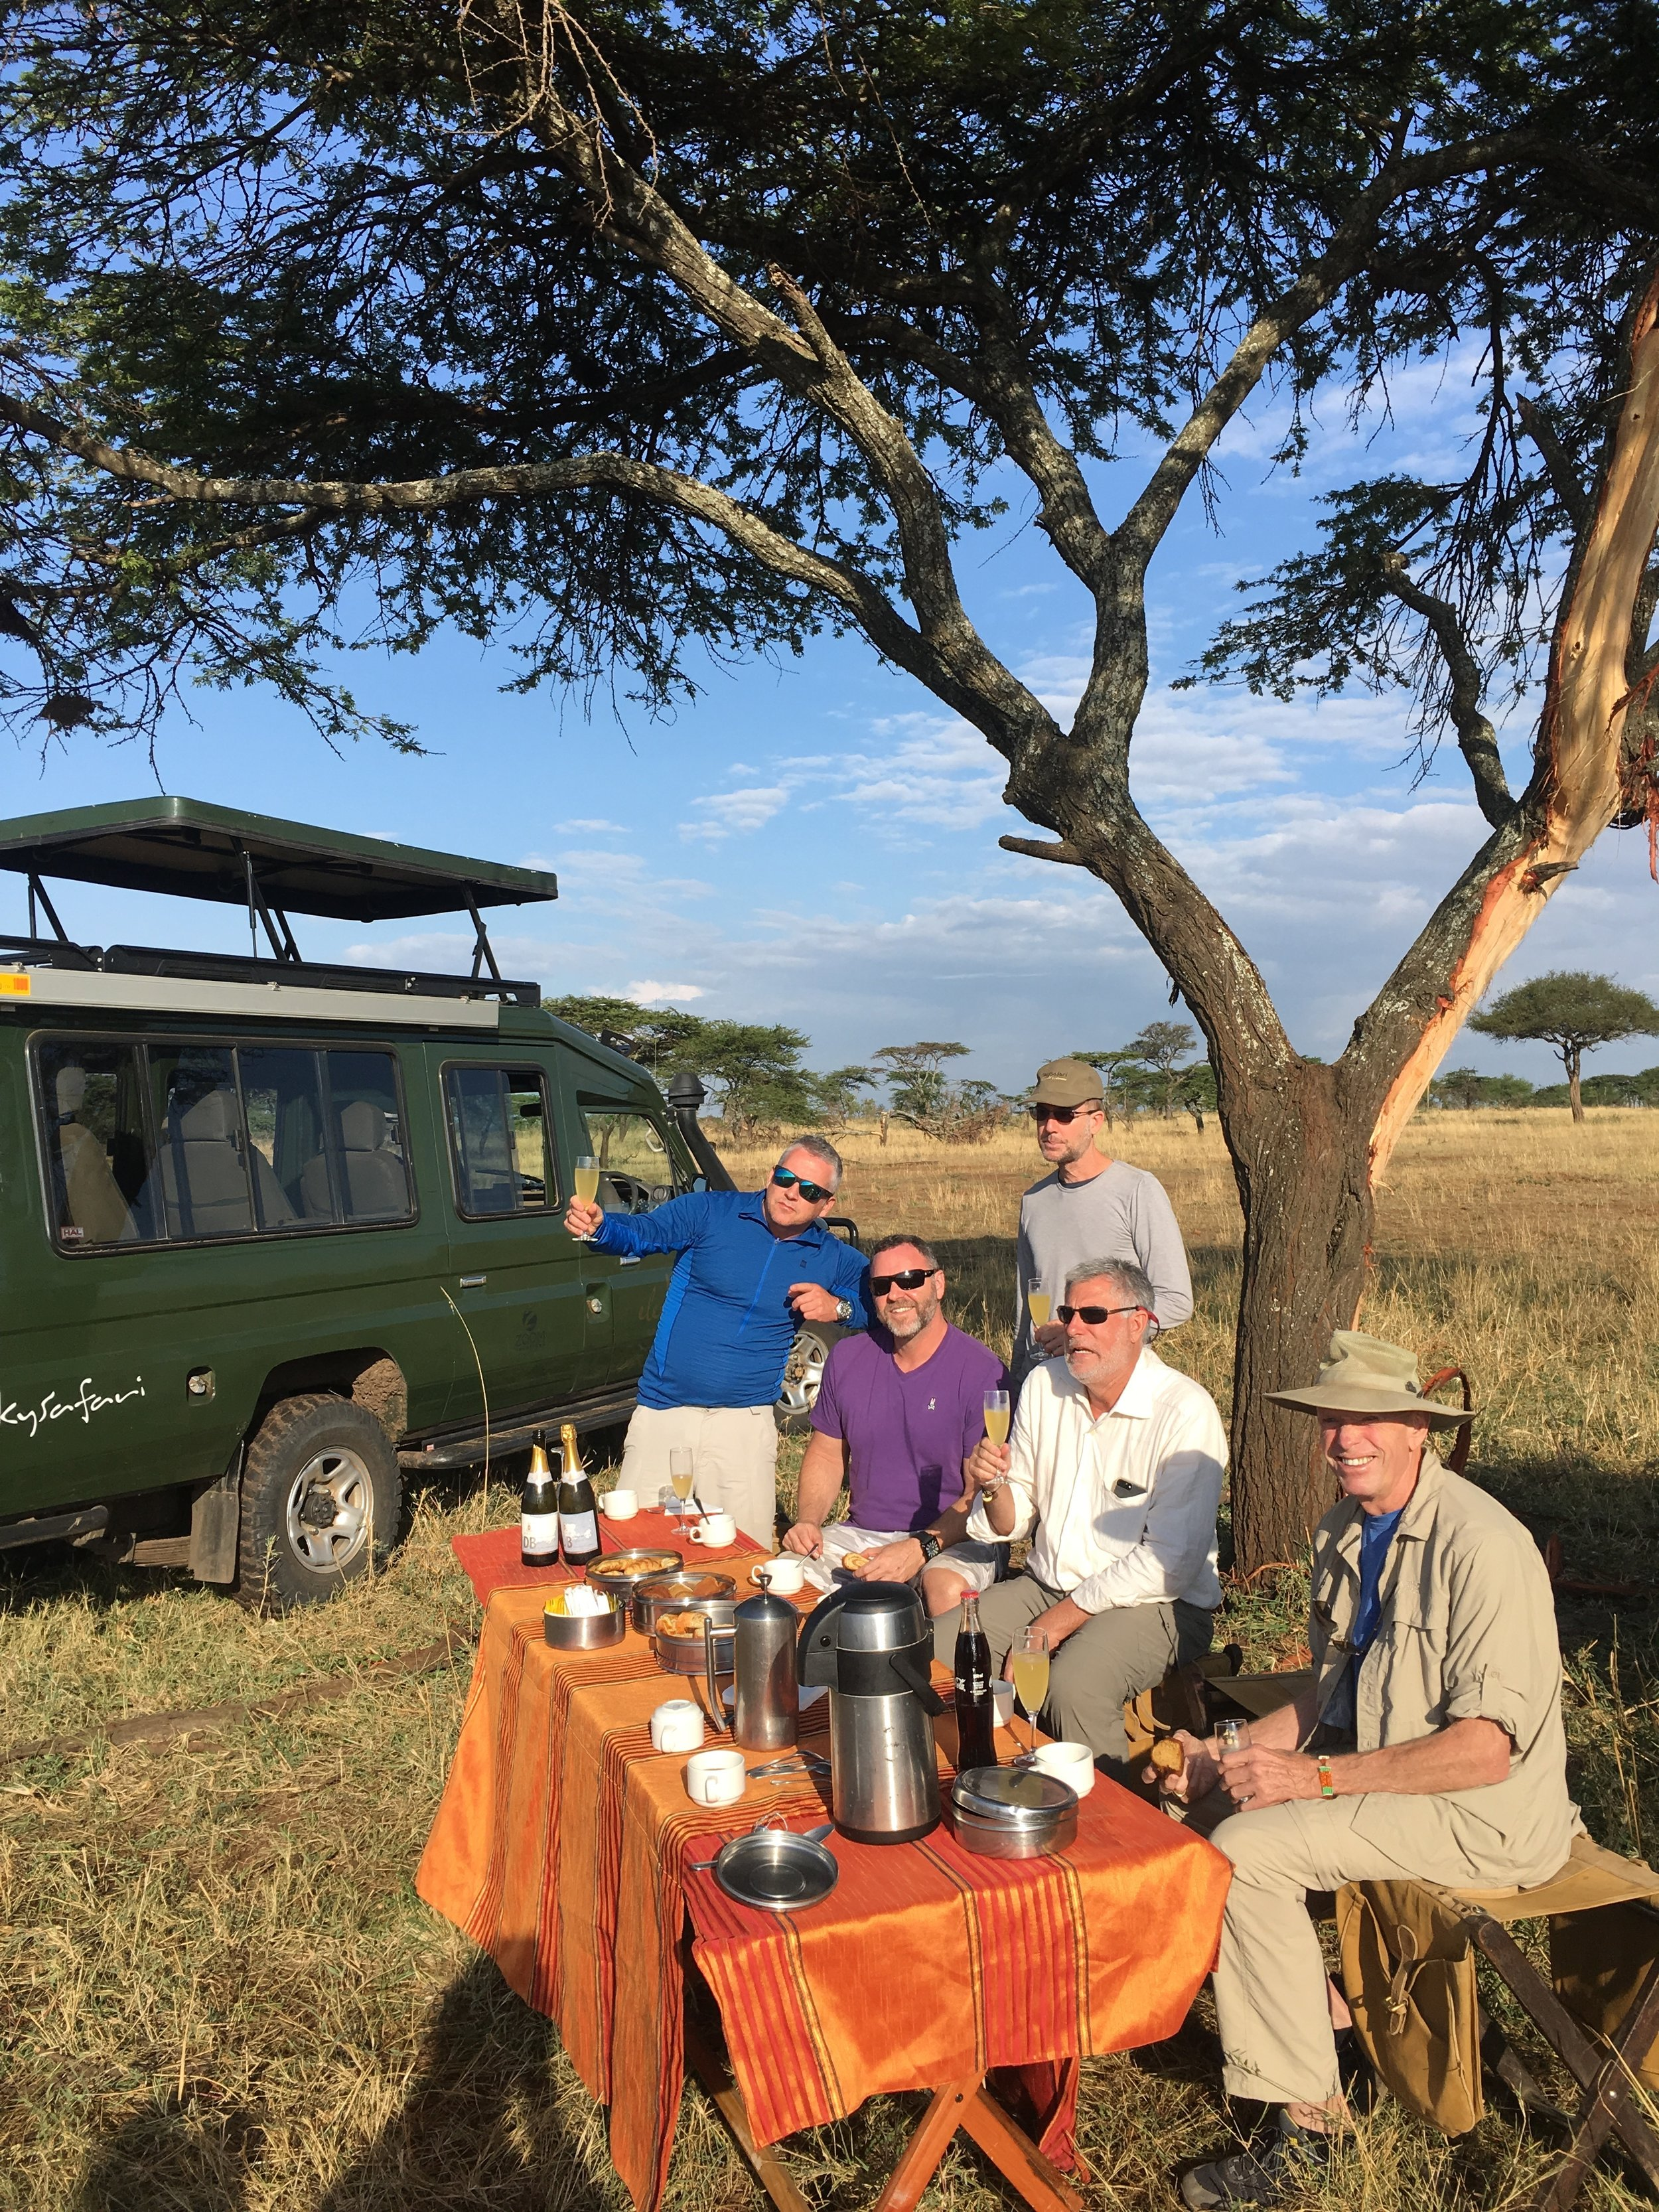 Staying well-nourished while on safari.